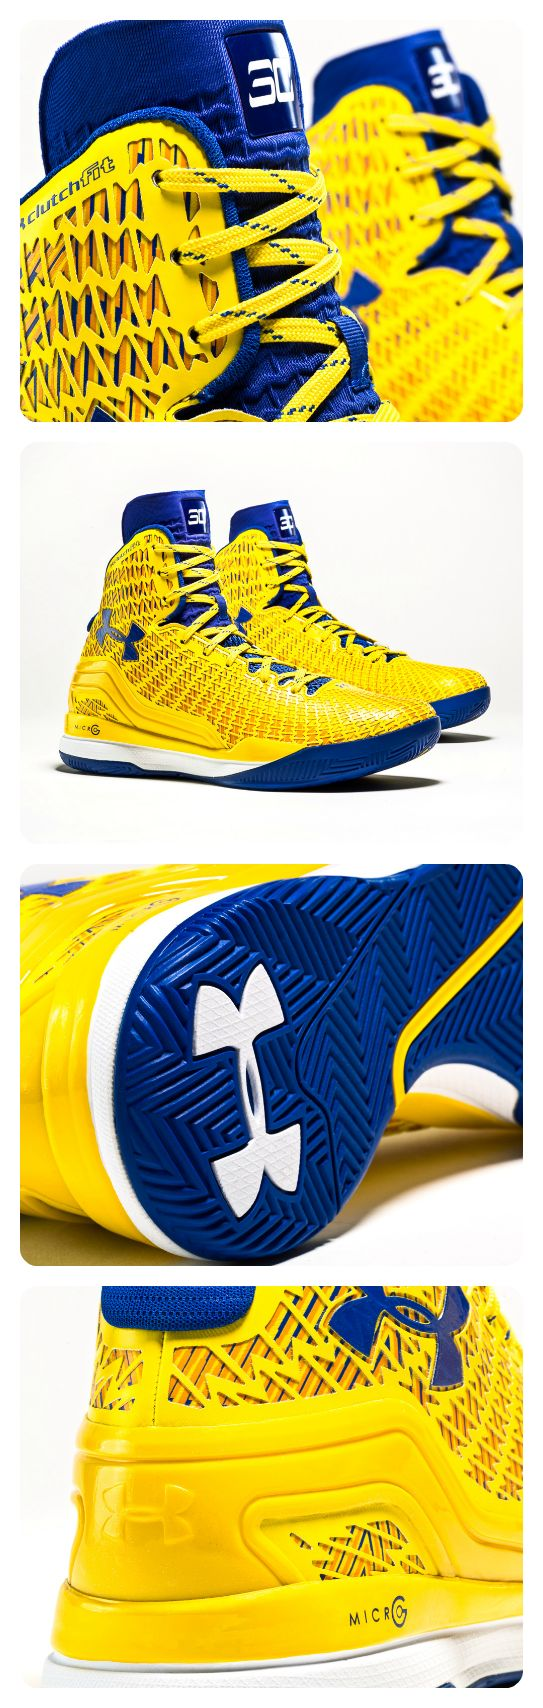 Best 25+ Curry basketball shoes ideas on Pinterest | Stephen curry  basketball shoes, Stephen curry shoes and Stephen curry sneakers